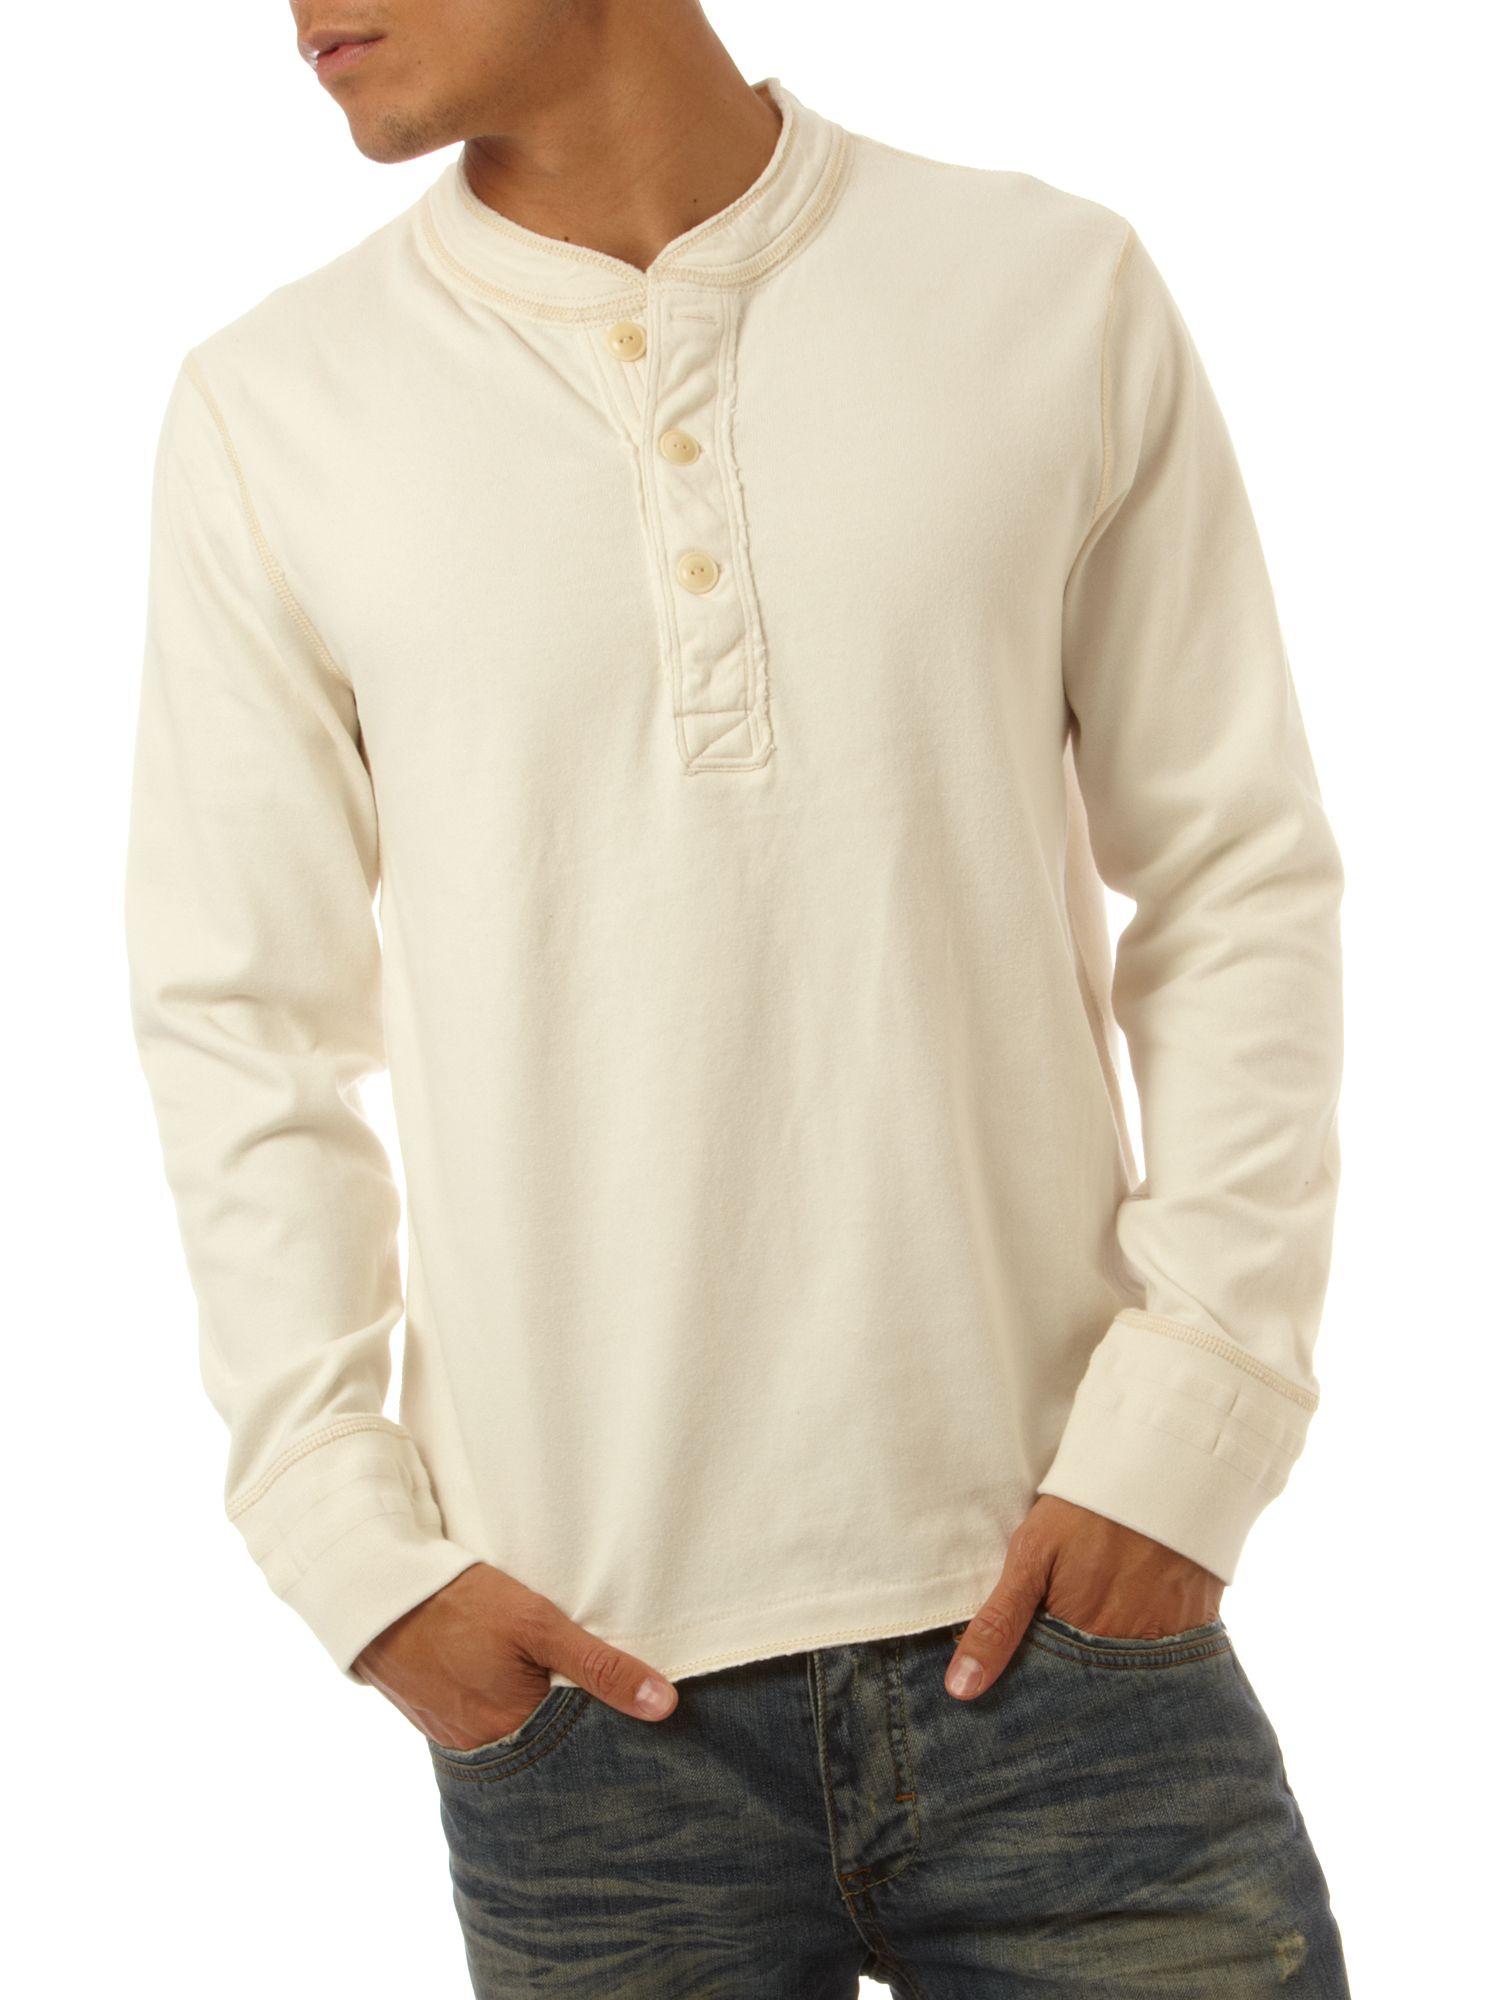 Polo Jeans Long sleeve henley T-shirt Cream product image